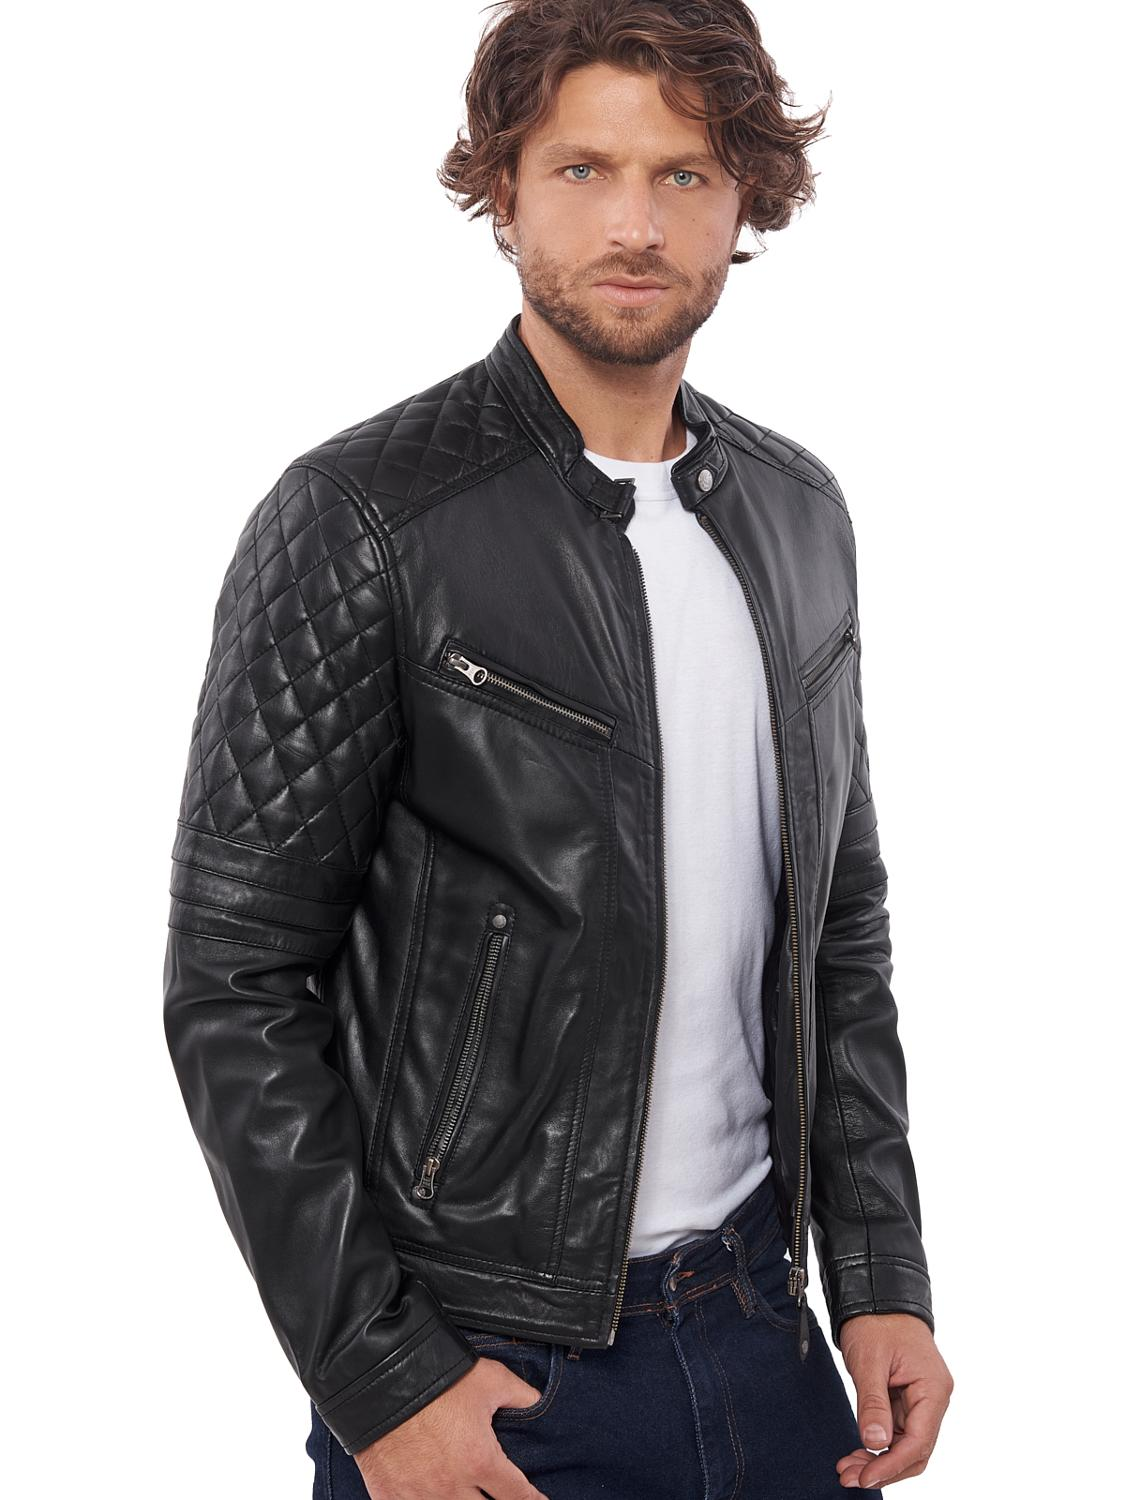 VAINAS European Brand Mens Premium Buffalo Leather Jacket For Men Winter Real  Leather Motorcycle Jackets Biker Jackets Bravo